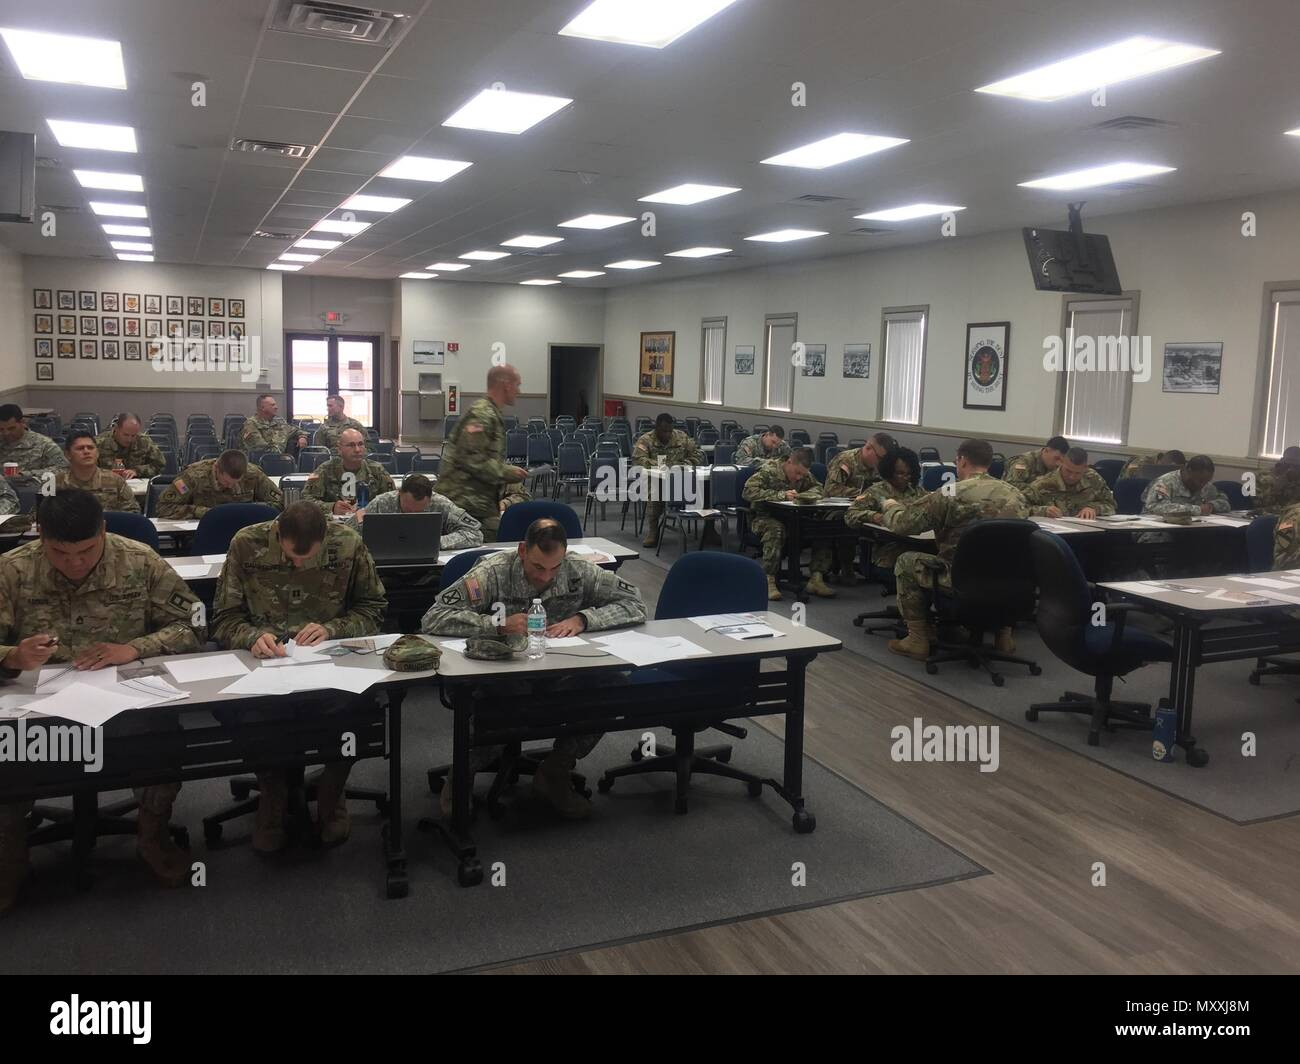 Thirty-five students from across 188th Infantry Brigade practice